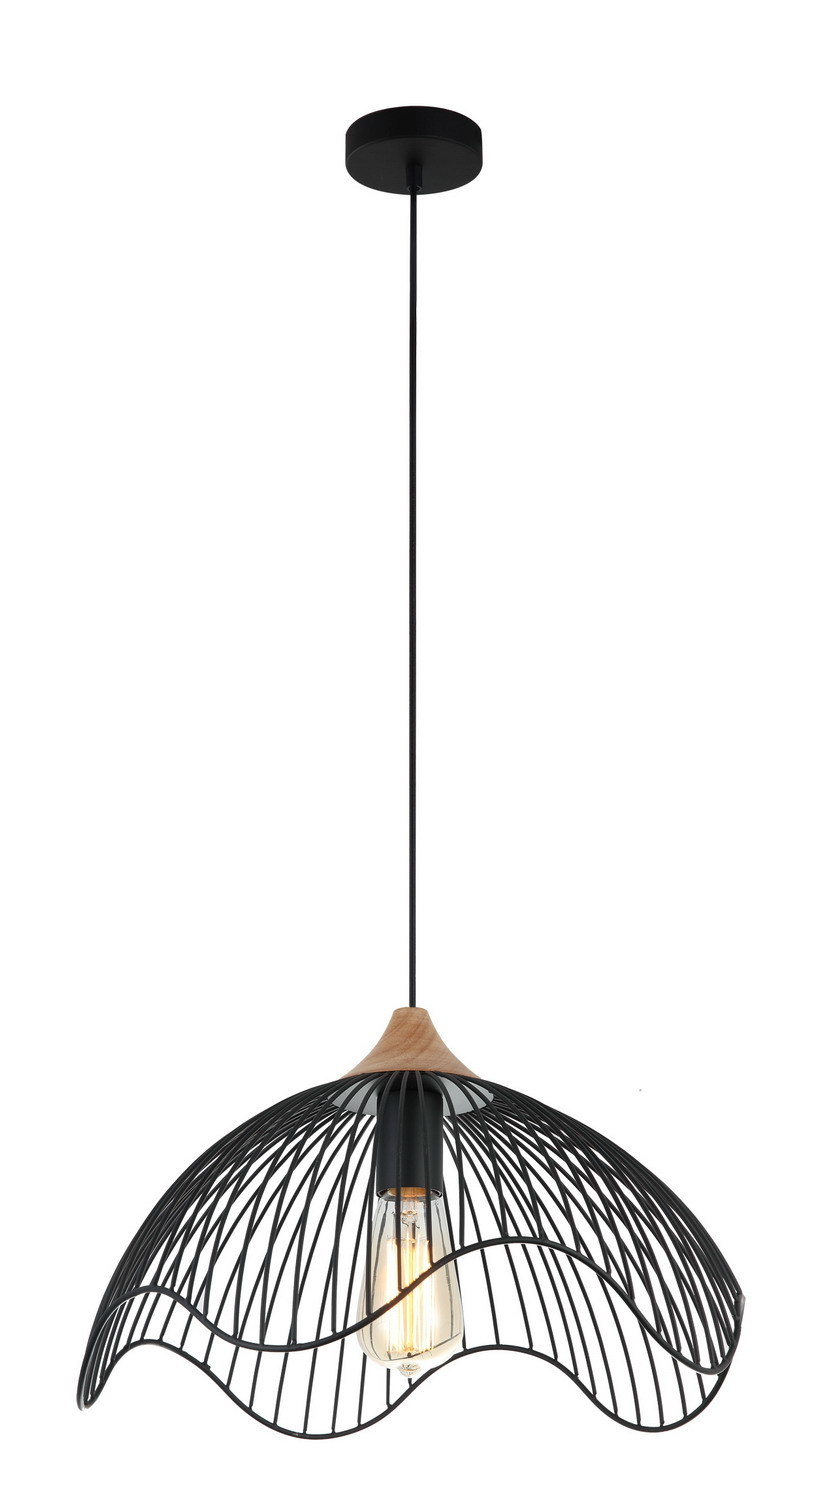 Pendant Es 72W Blk Iron + Wood Dome (Wavy Edge Pertaining To Amara 2 Light Dome Pendants (Image 27 of 30)